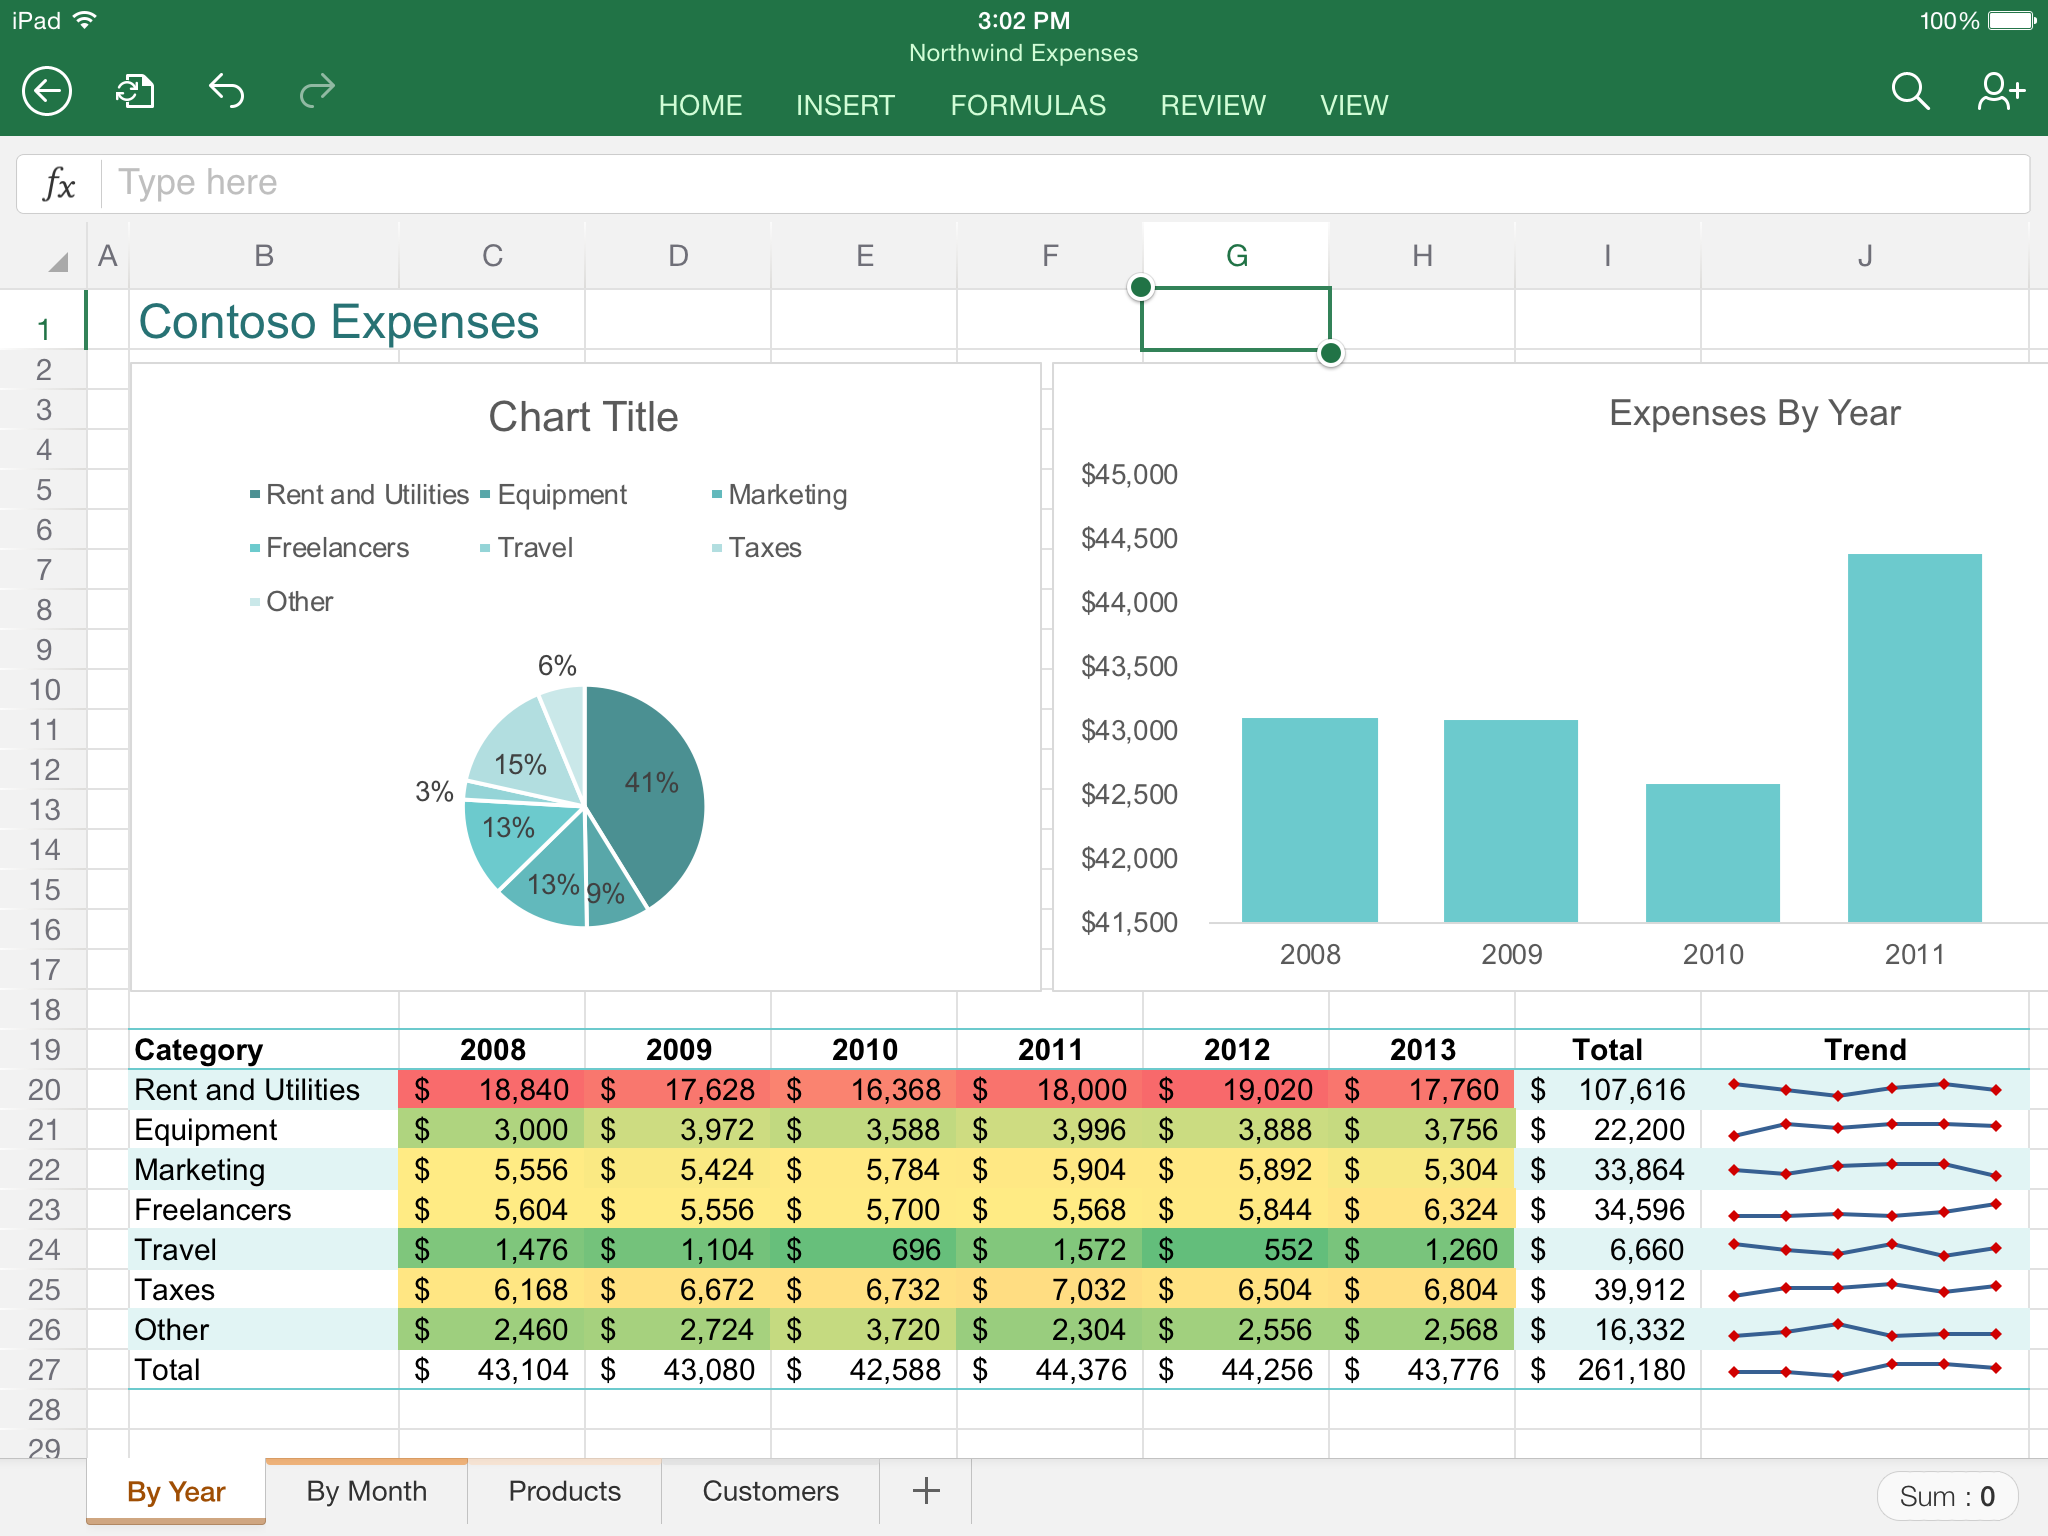 Ediblewildsus  Fascinating App Highlight Excel  Mobile Digital Now With Handsome Excel In Action With Archaic Excel Distributing Also Excel Calculate P Value In Addition Cash Flow Formula Excel And Financial Calculator Excel As Well As Excel Bible Pdf Additionally Row Limit Excel From Youstonybrookedu With Ediblewildsus  Handsome App Highlight Excel  Mobile Digital Now With Archaic Excel In Action And Fascinating Excel Distributing Also Excel Calculate P Value In Addition Cash Flow Formula Excel From Youstonybrookedu